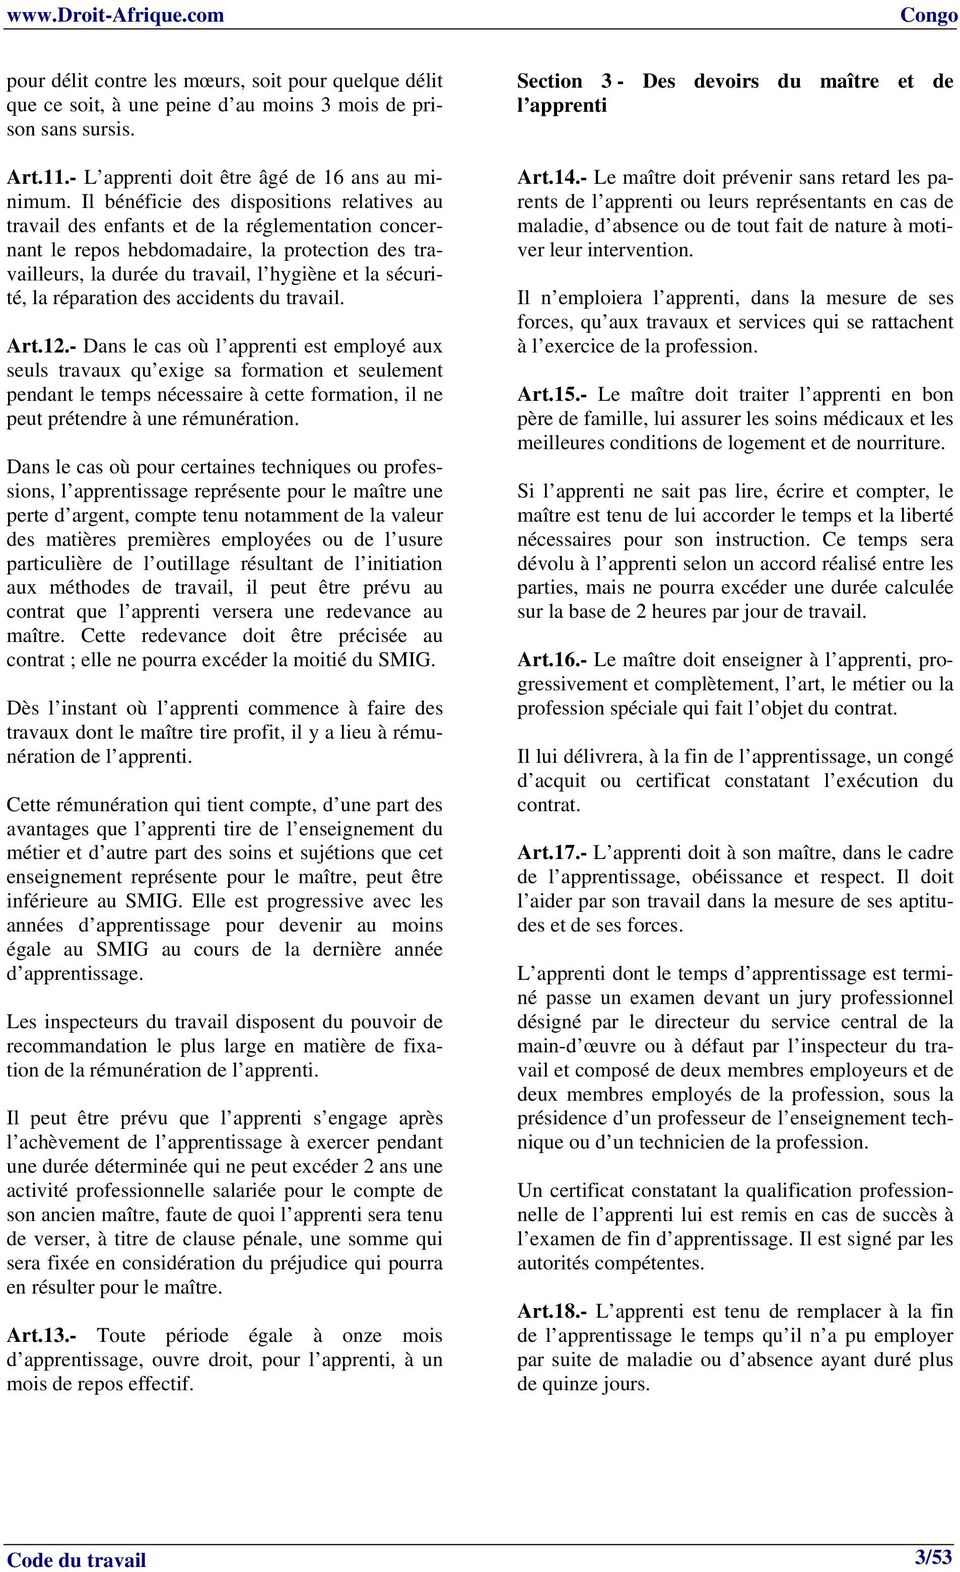 la réparation des accidents du travail. Art.12.